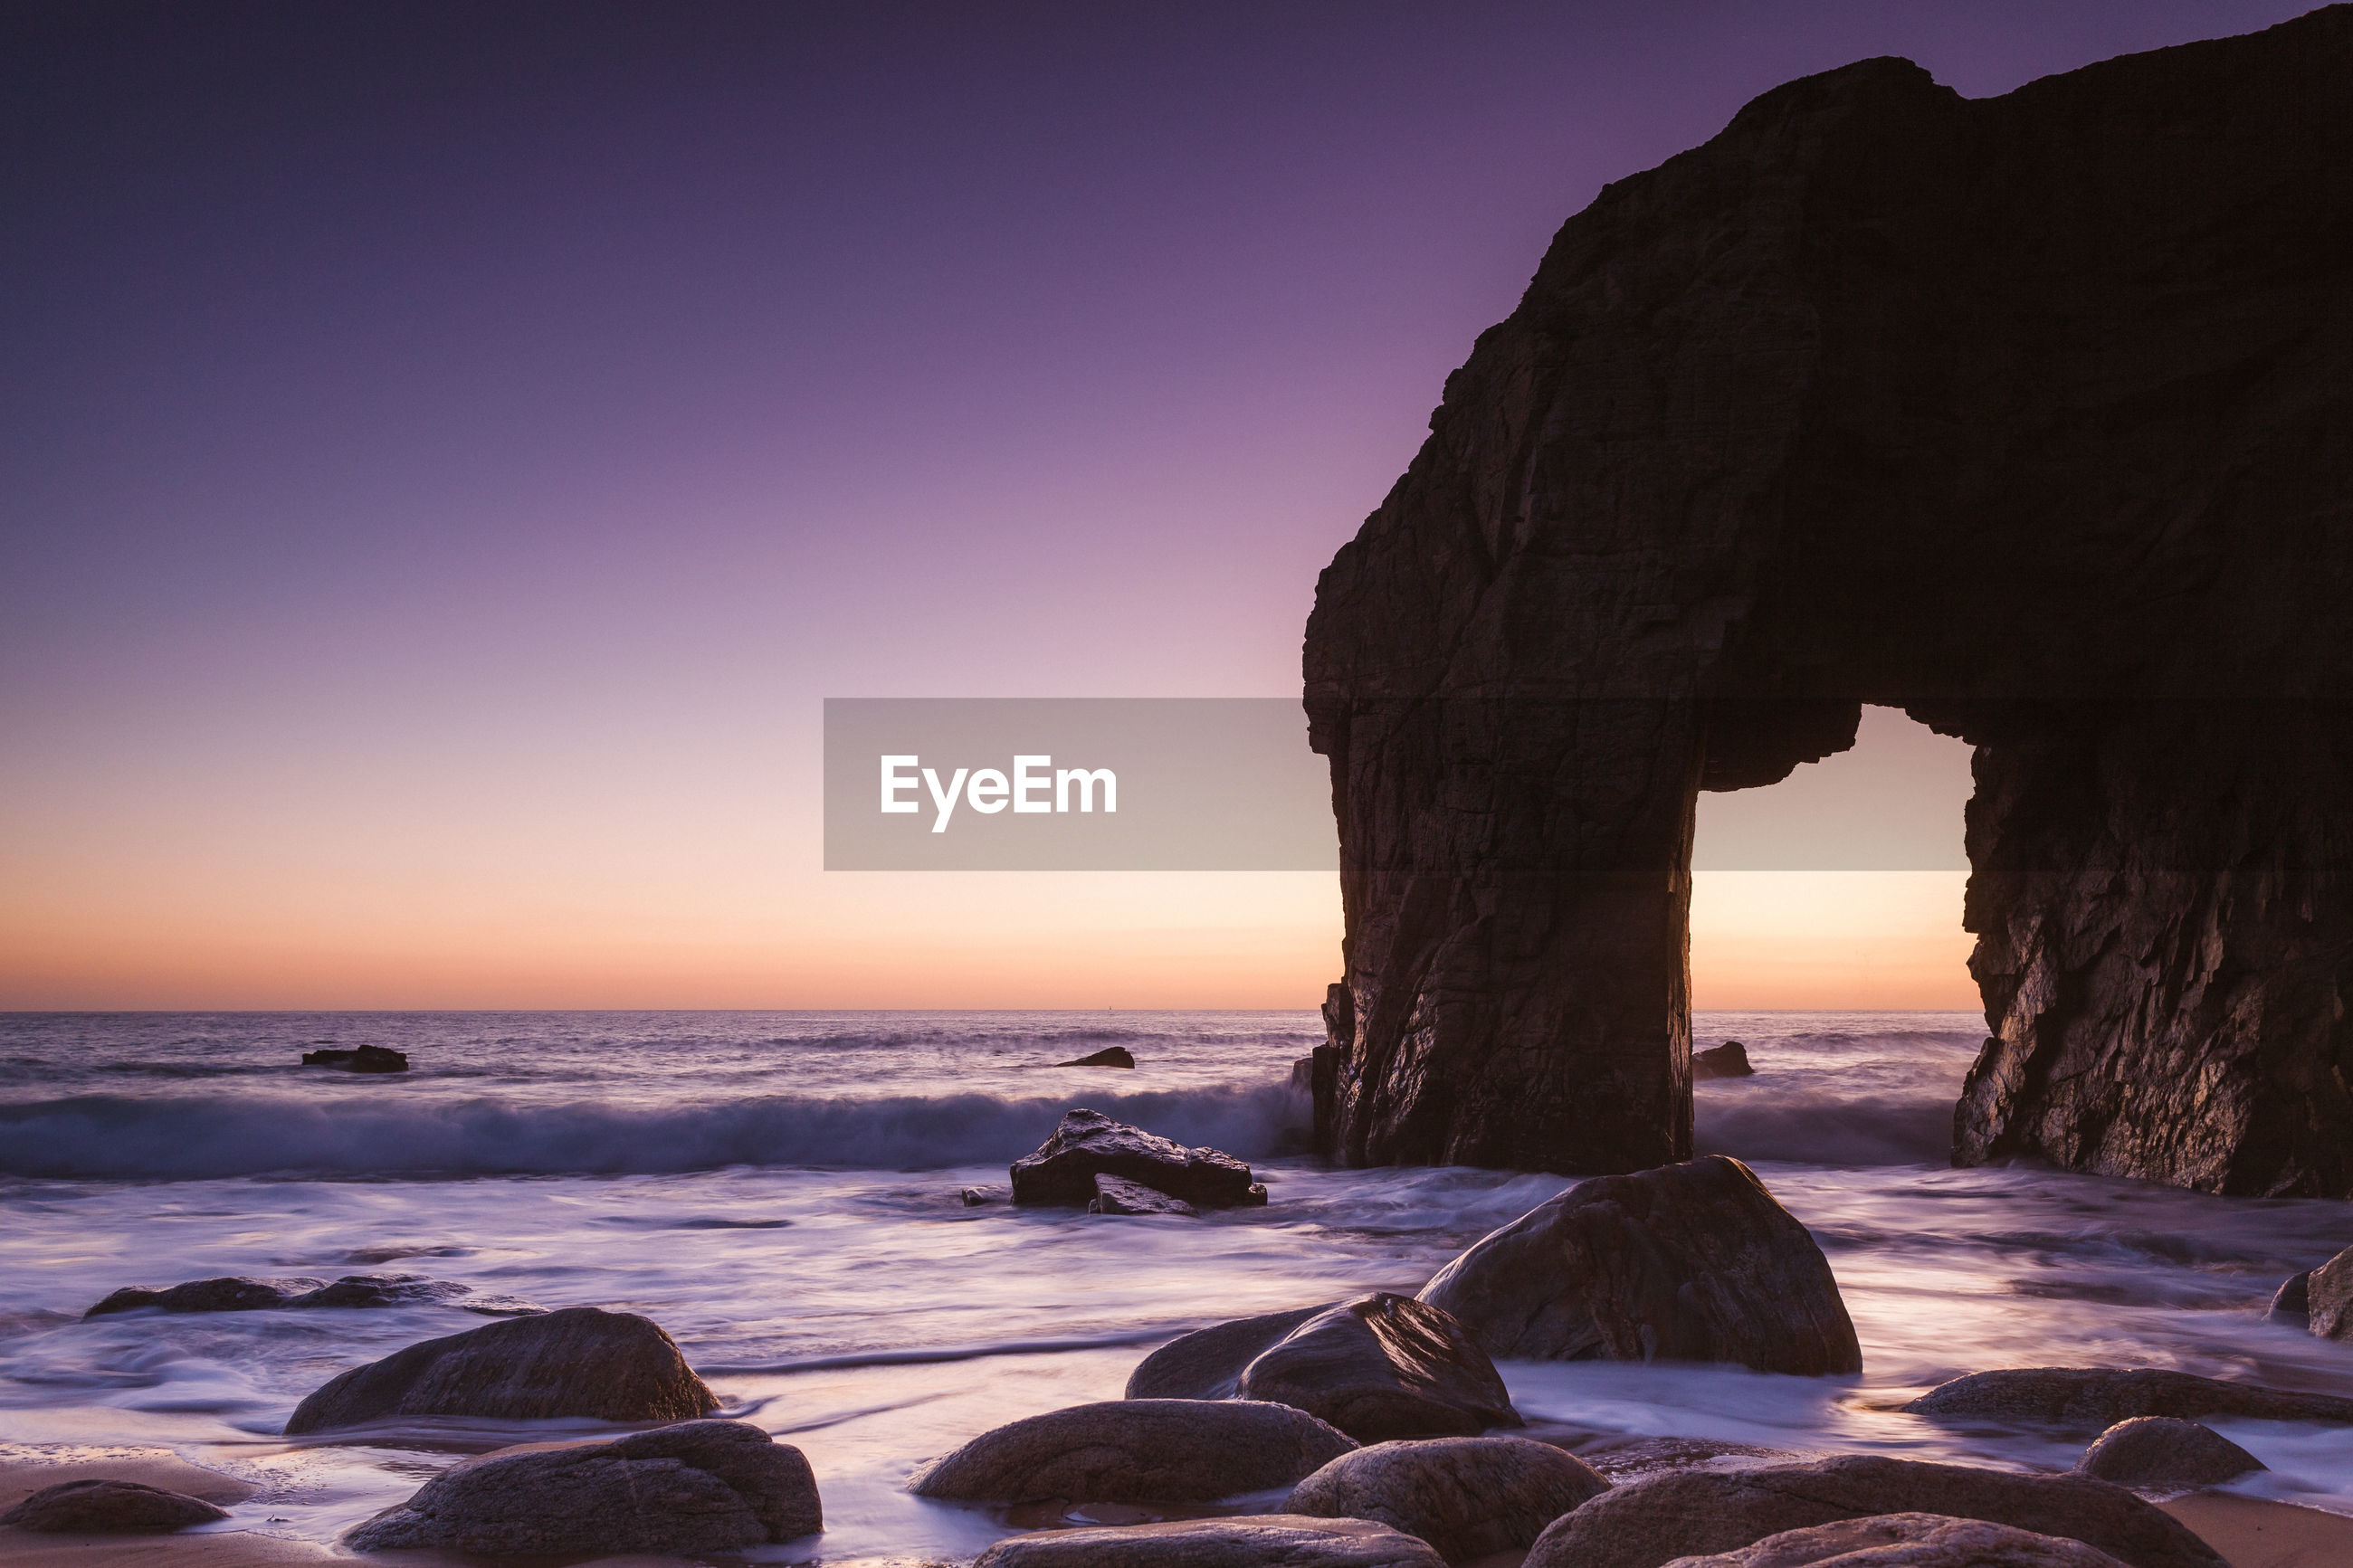 ROCK FORMATION AT BEACH AGAINST CLEAR SKY